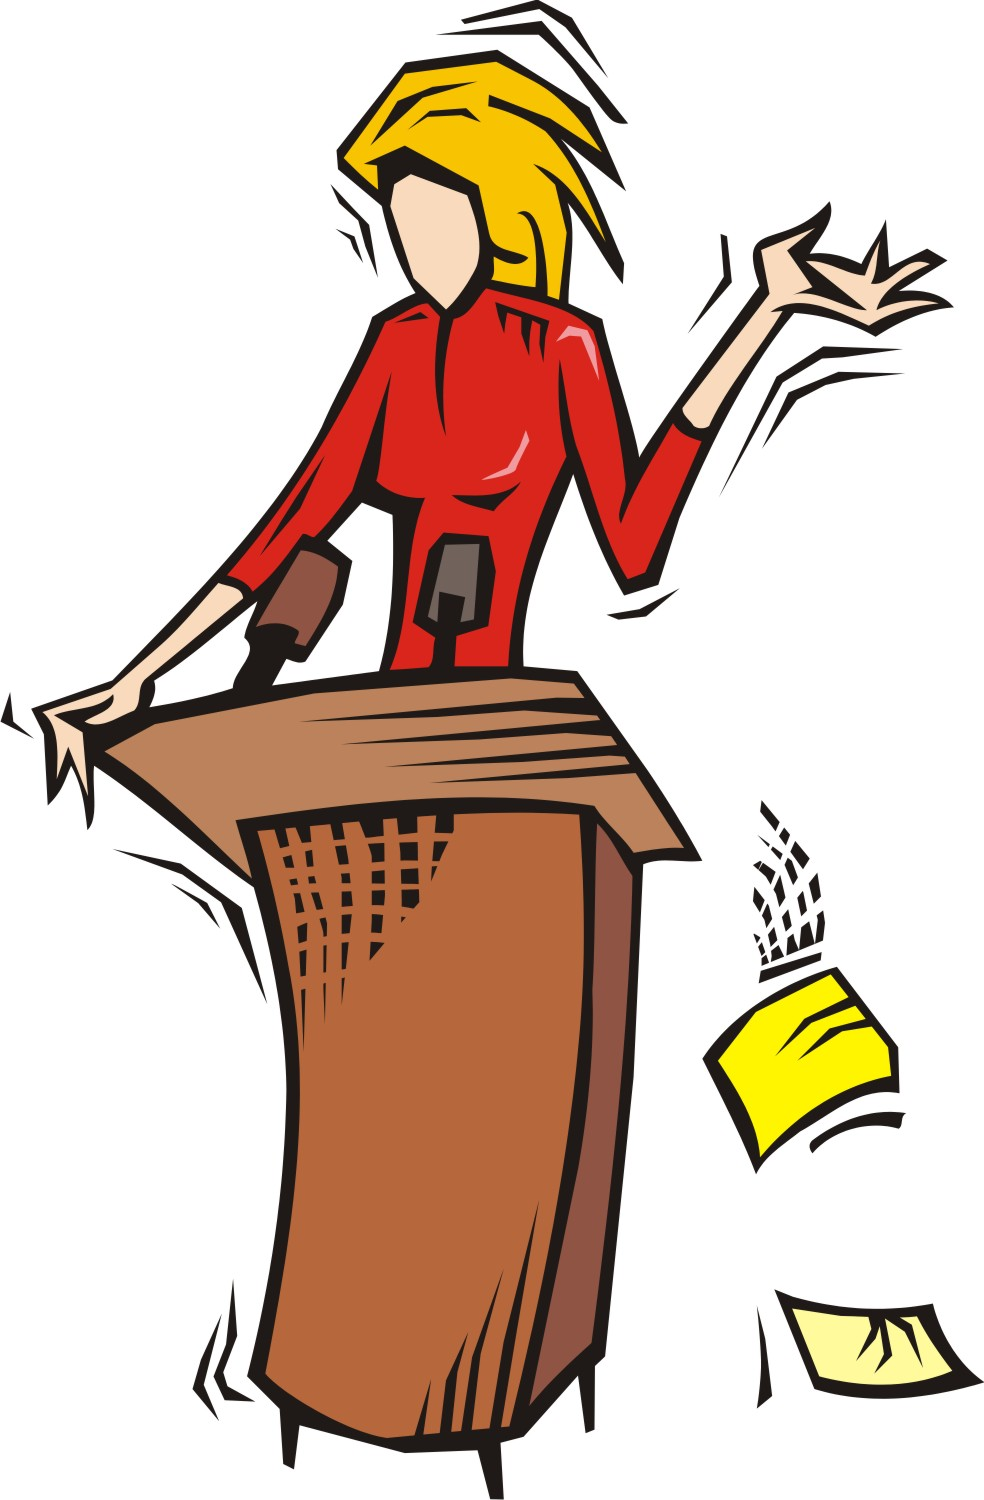 Free woman speaker cliparts. Speakers clipart lady